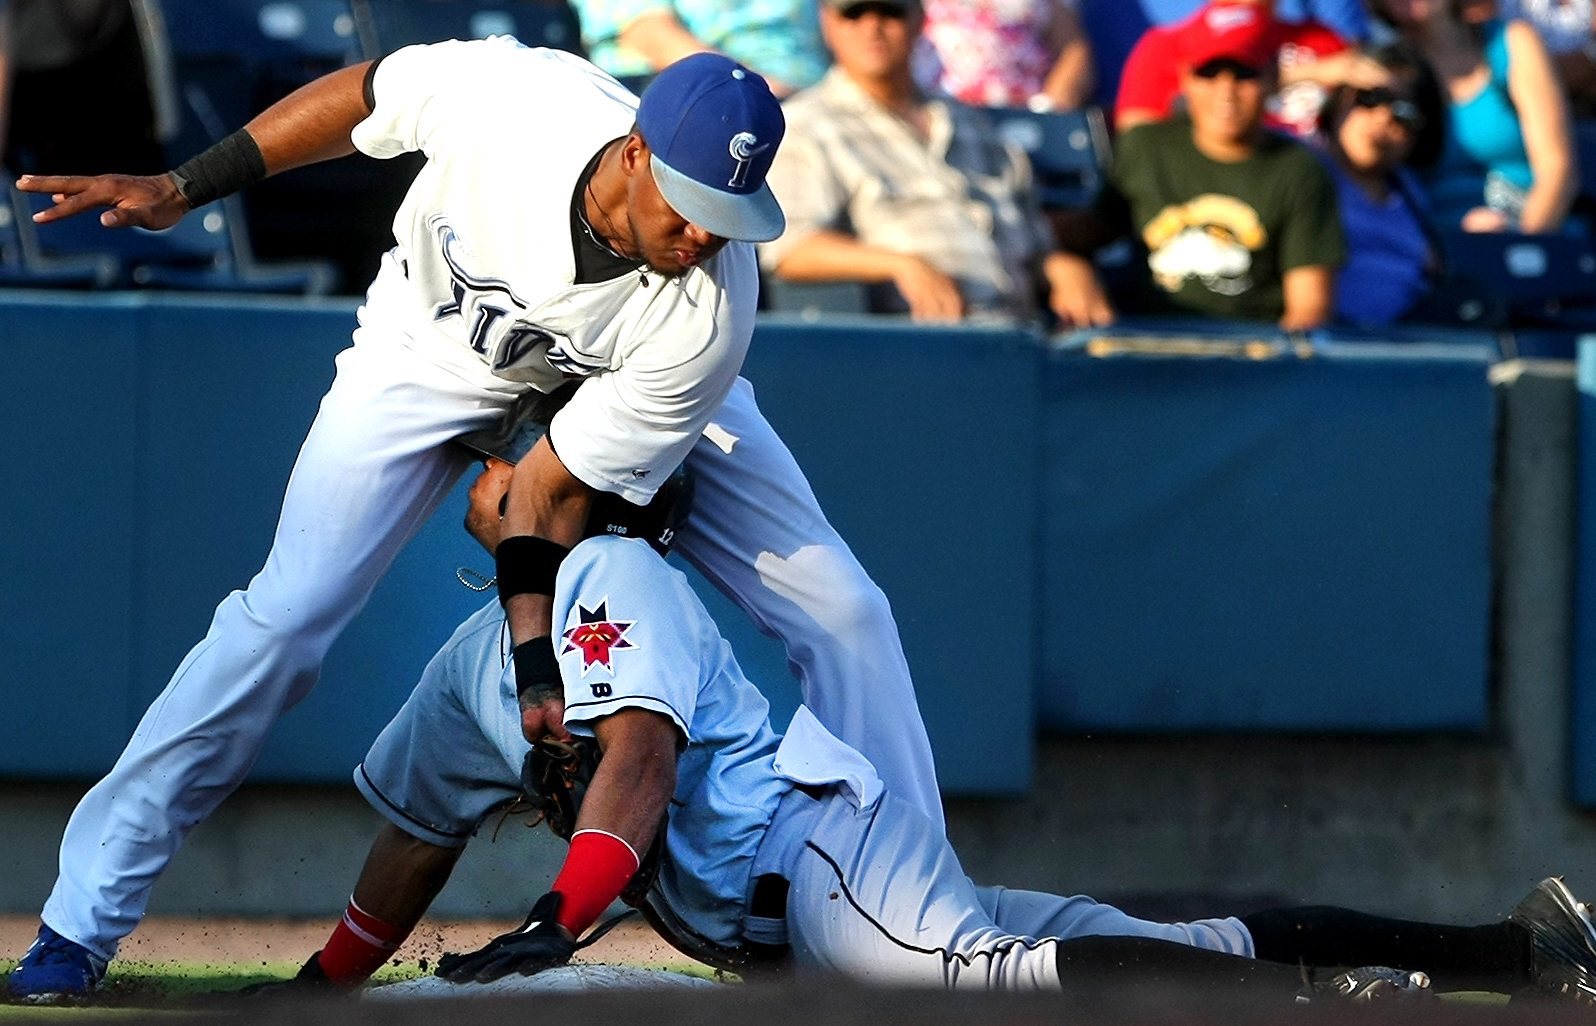 Tides third baseman Michael Almanzar tags out Indianapolis's Gustavo Nunez in the top of the third inning, Sunday, Aug. 9, 2015 at Harbor Park in Norfolk. (AP Photo/Jason HIrschfeld)